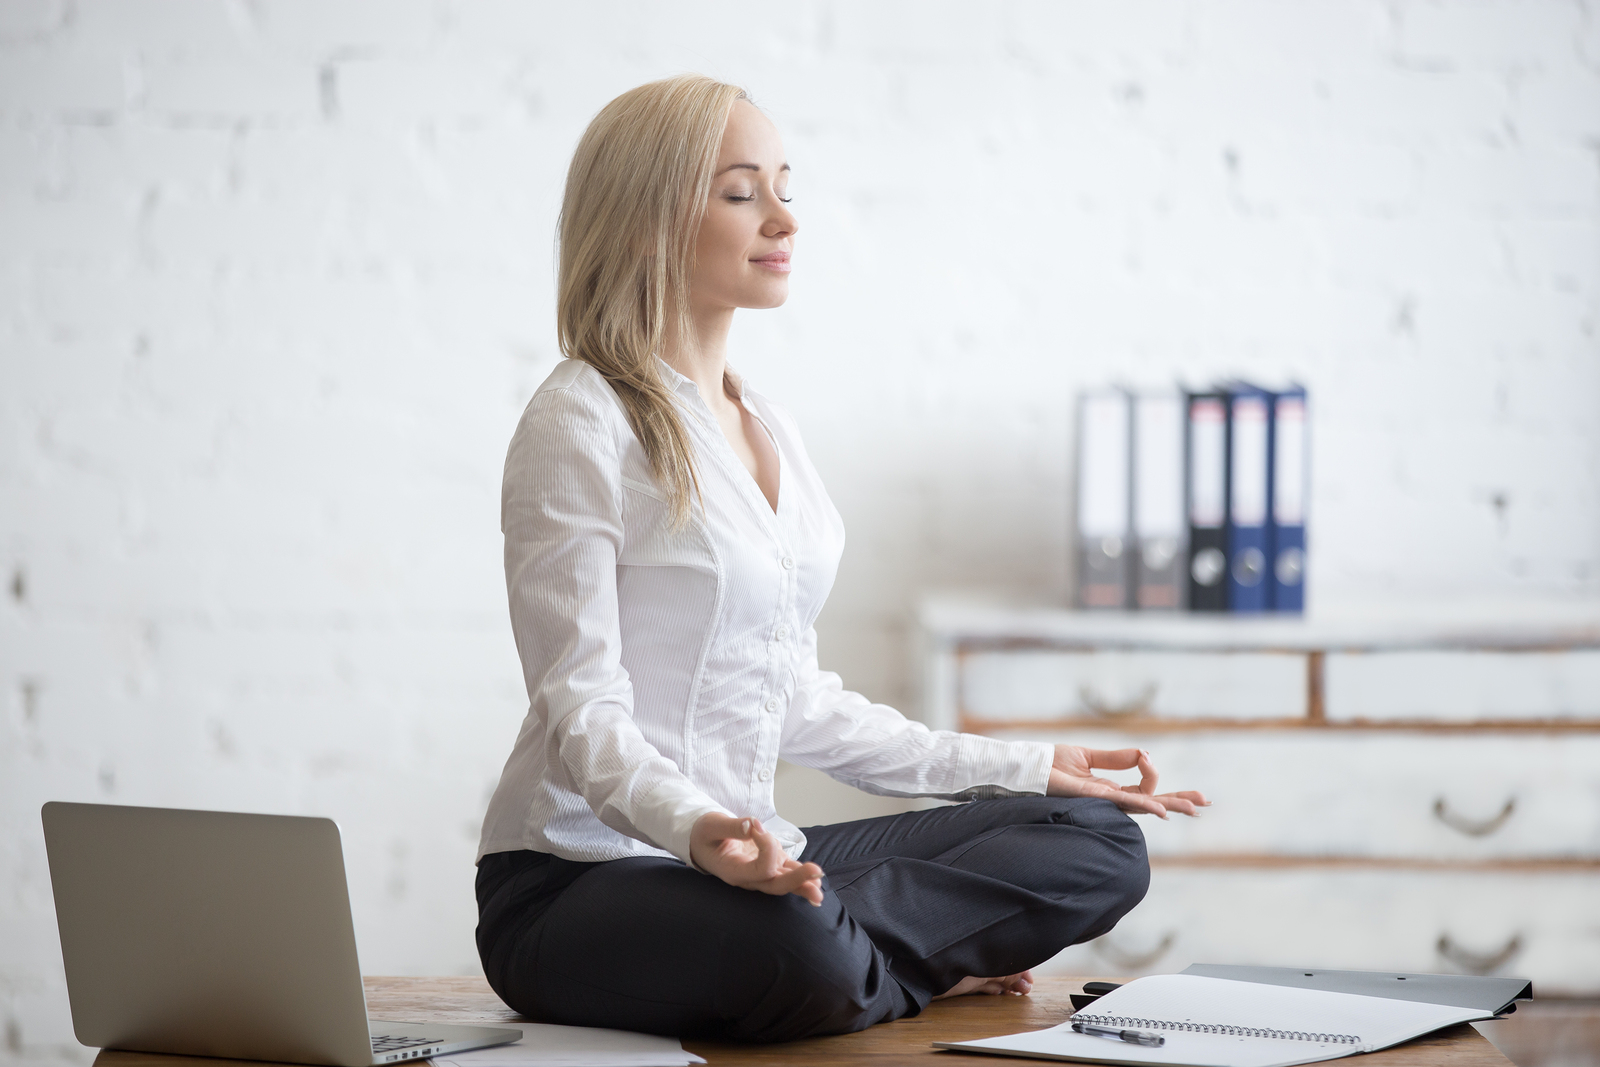 5 5-Minute Ways to Destress and Feel Relaxed Fast